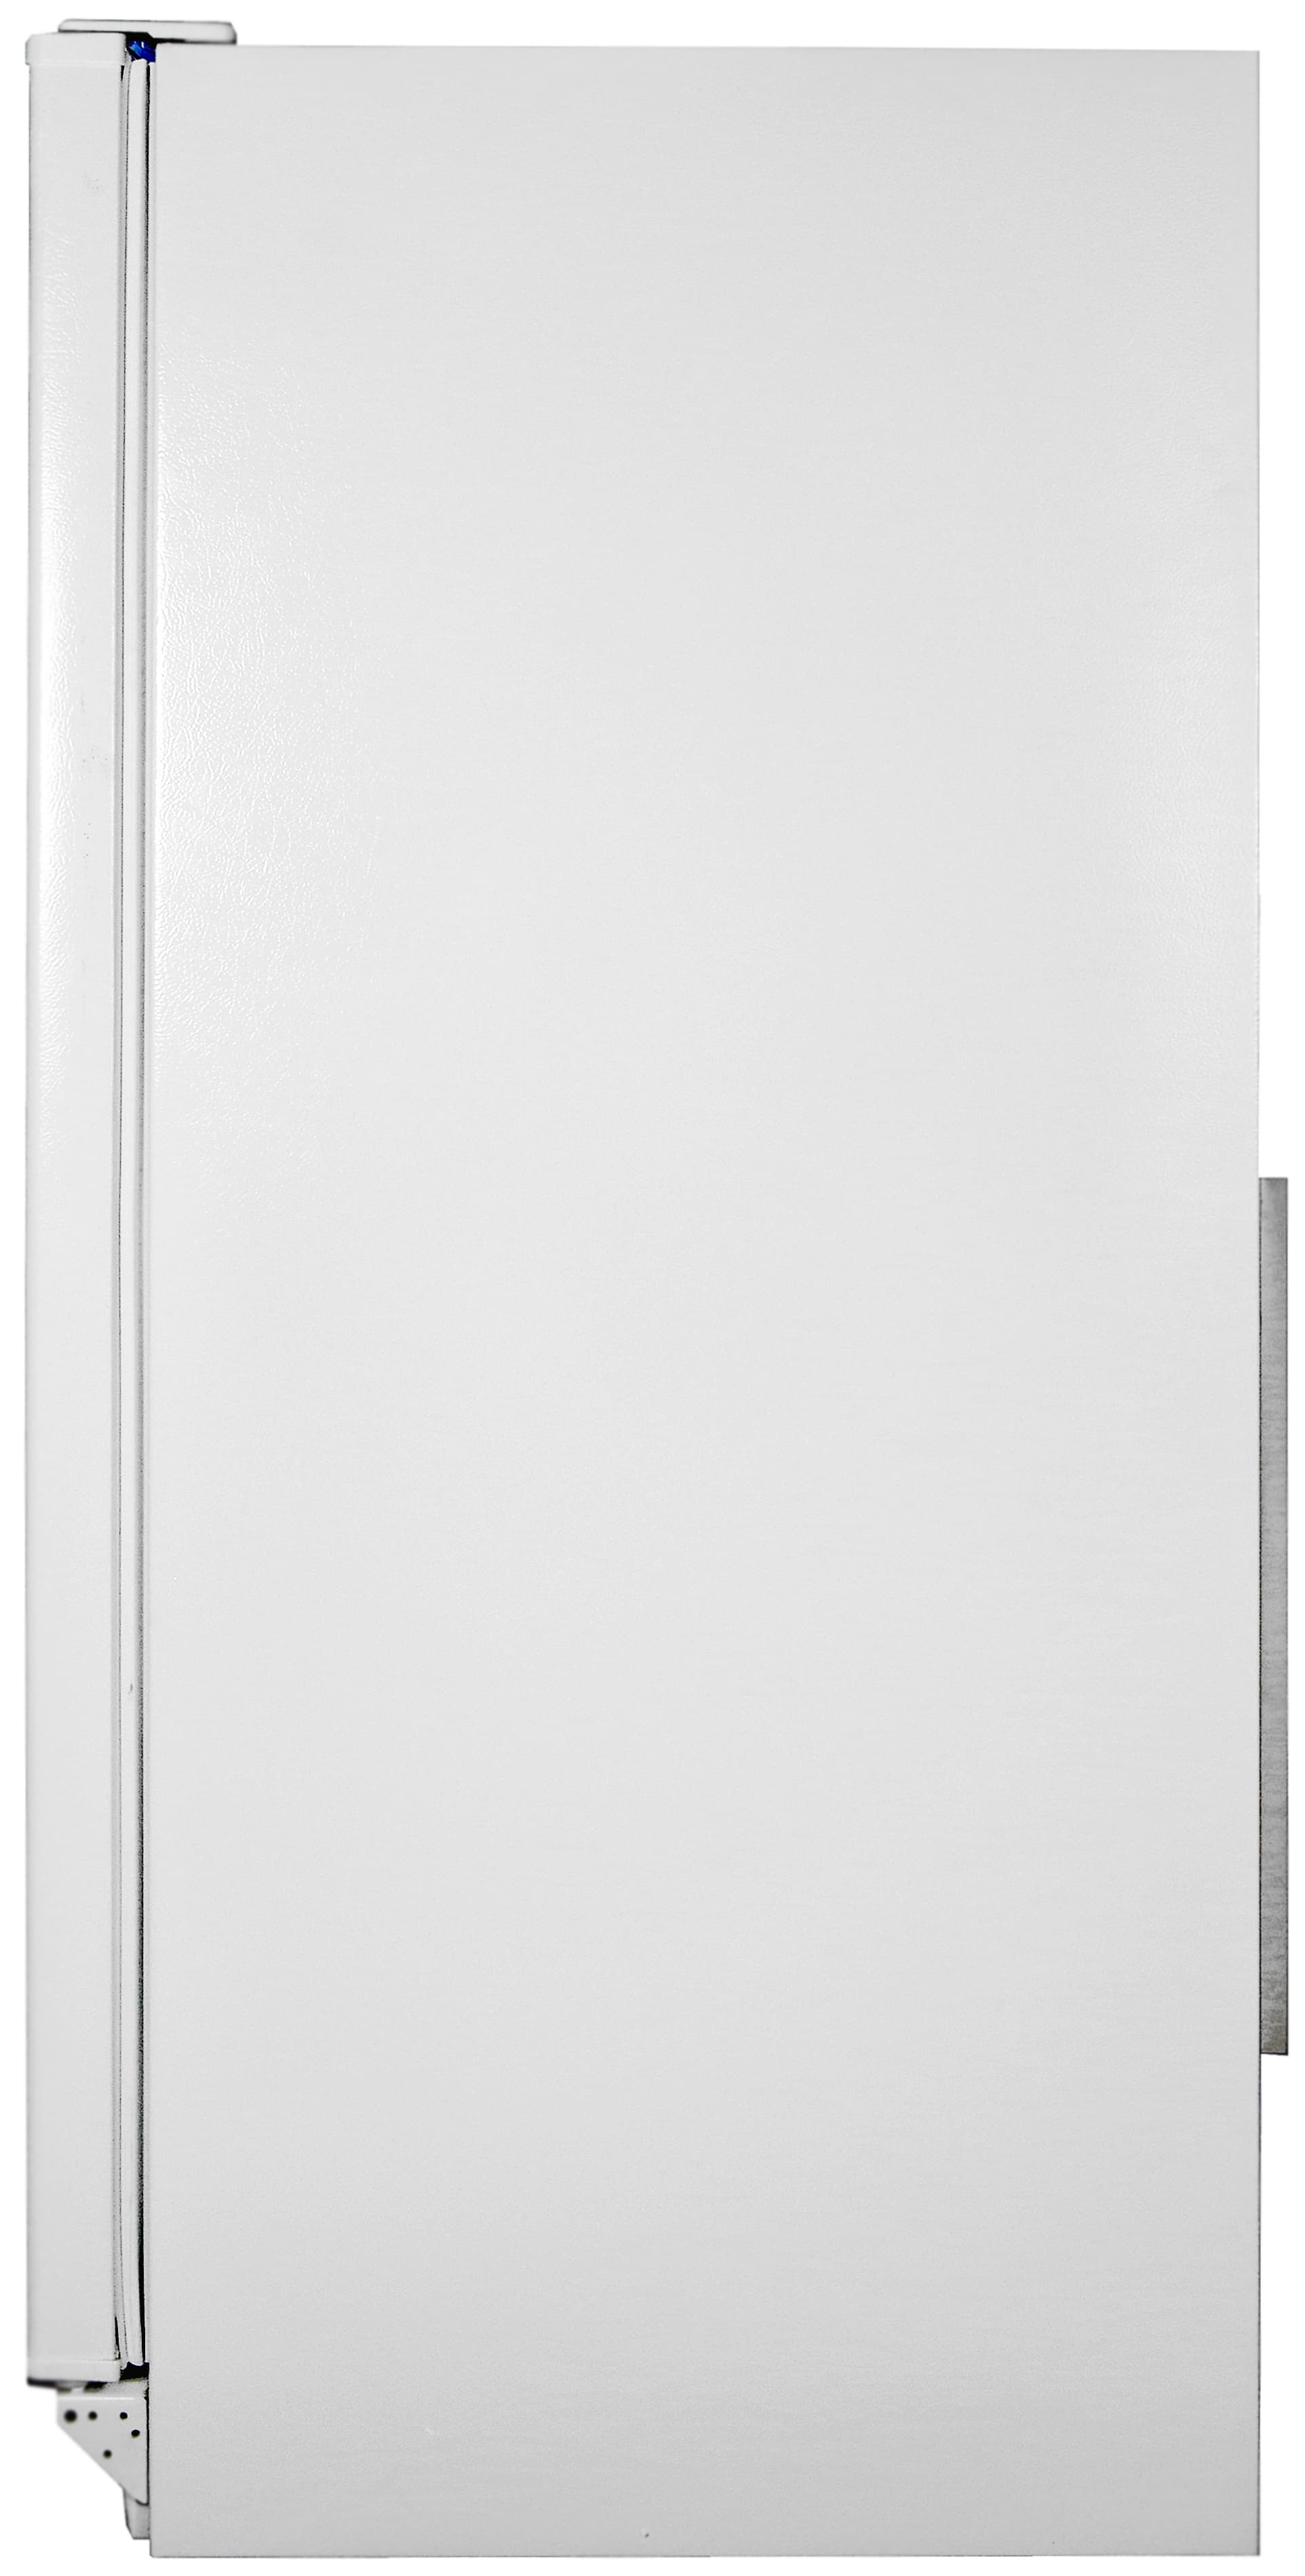 Basic white sides match the white textured front of the Whirlpool EV160NZTQ.